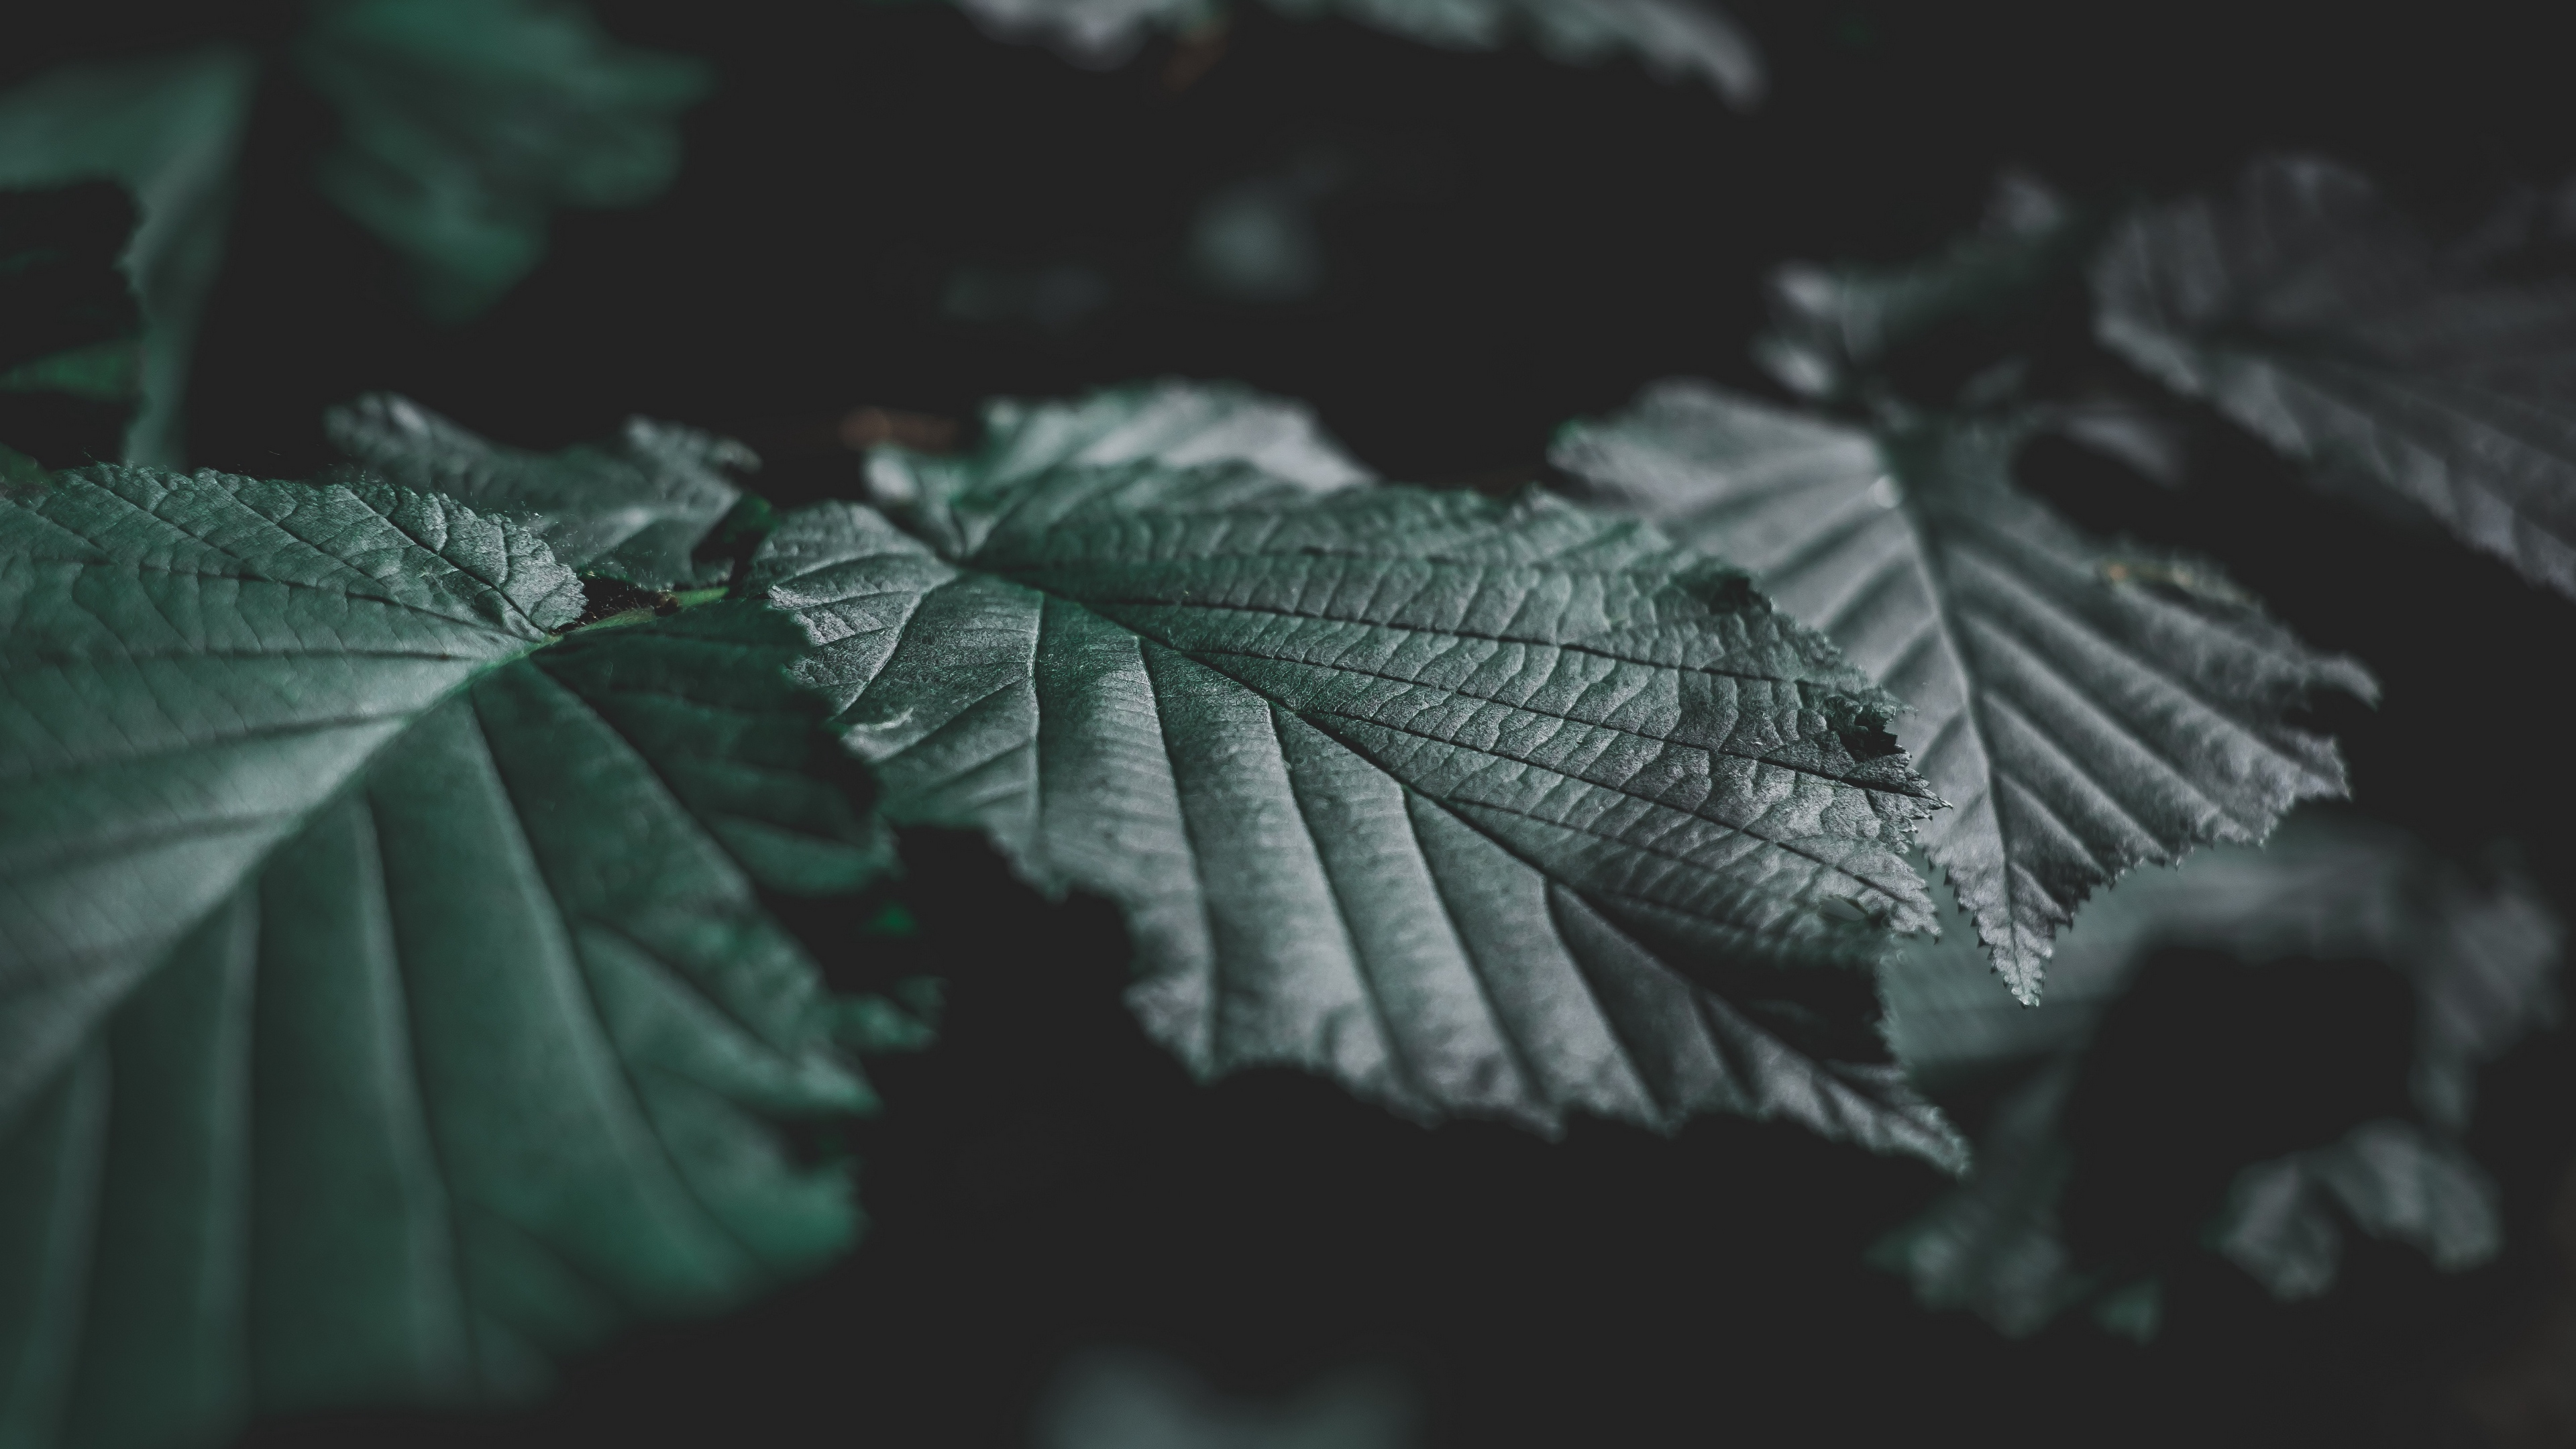 leaves veins close up 4k 1540574480 - leaves, veins, close-up 4k - veins, Leaves, close-up